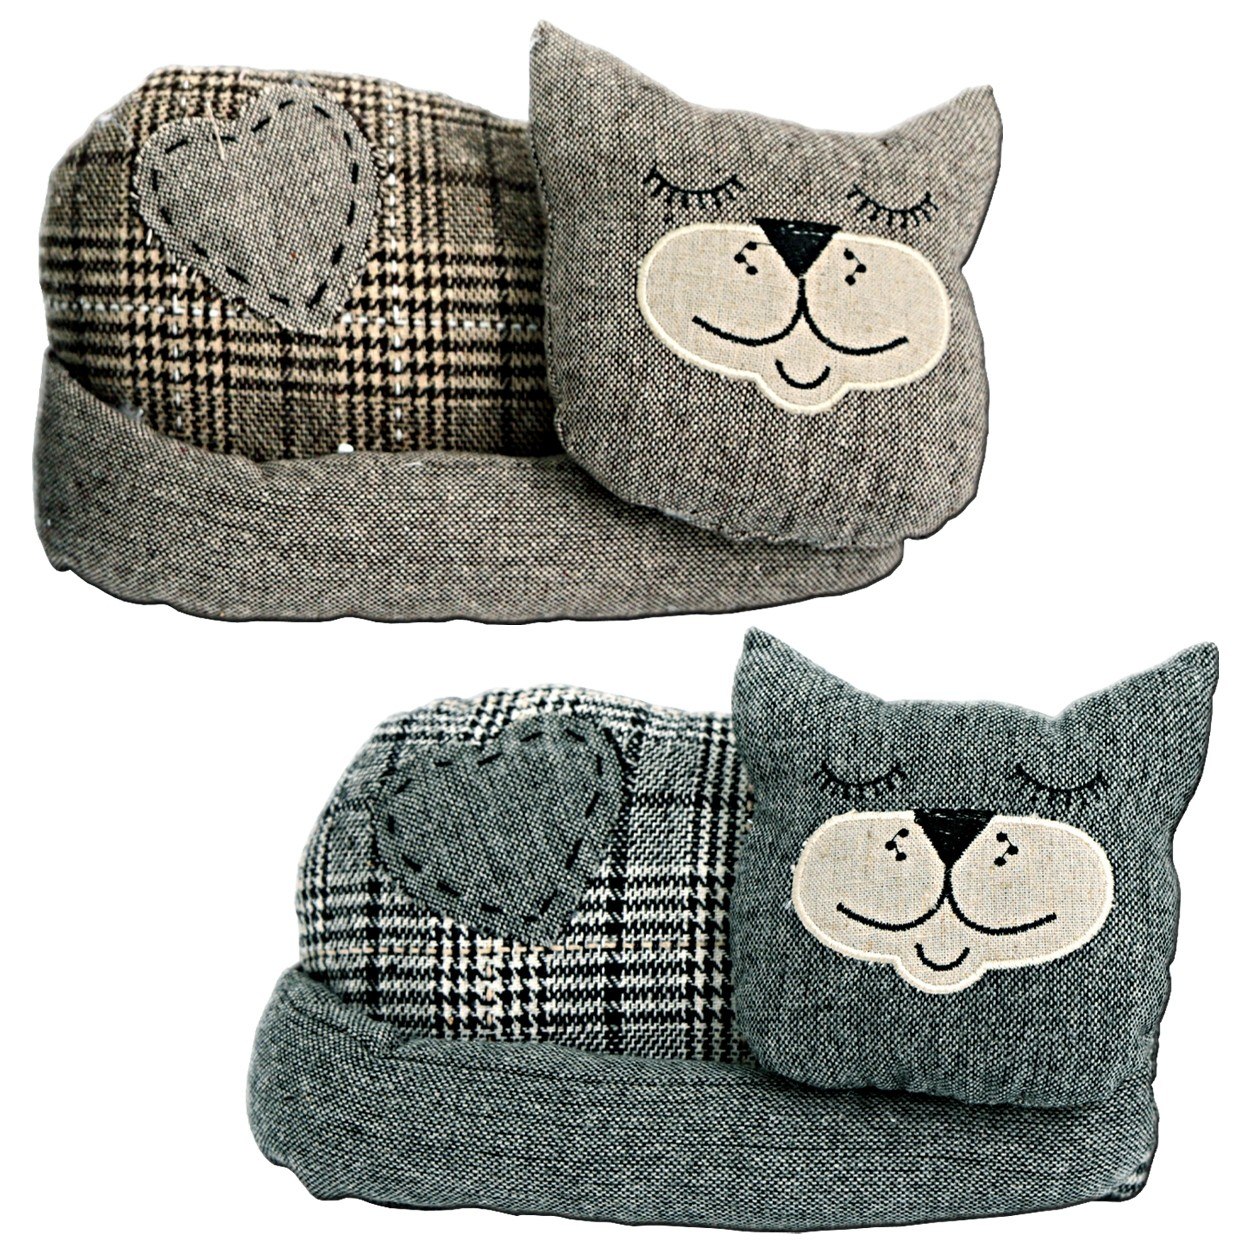 Sleeping Cat Doorstop